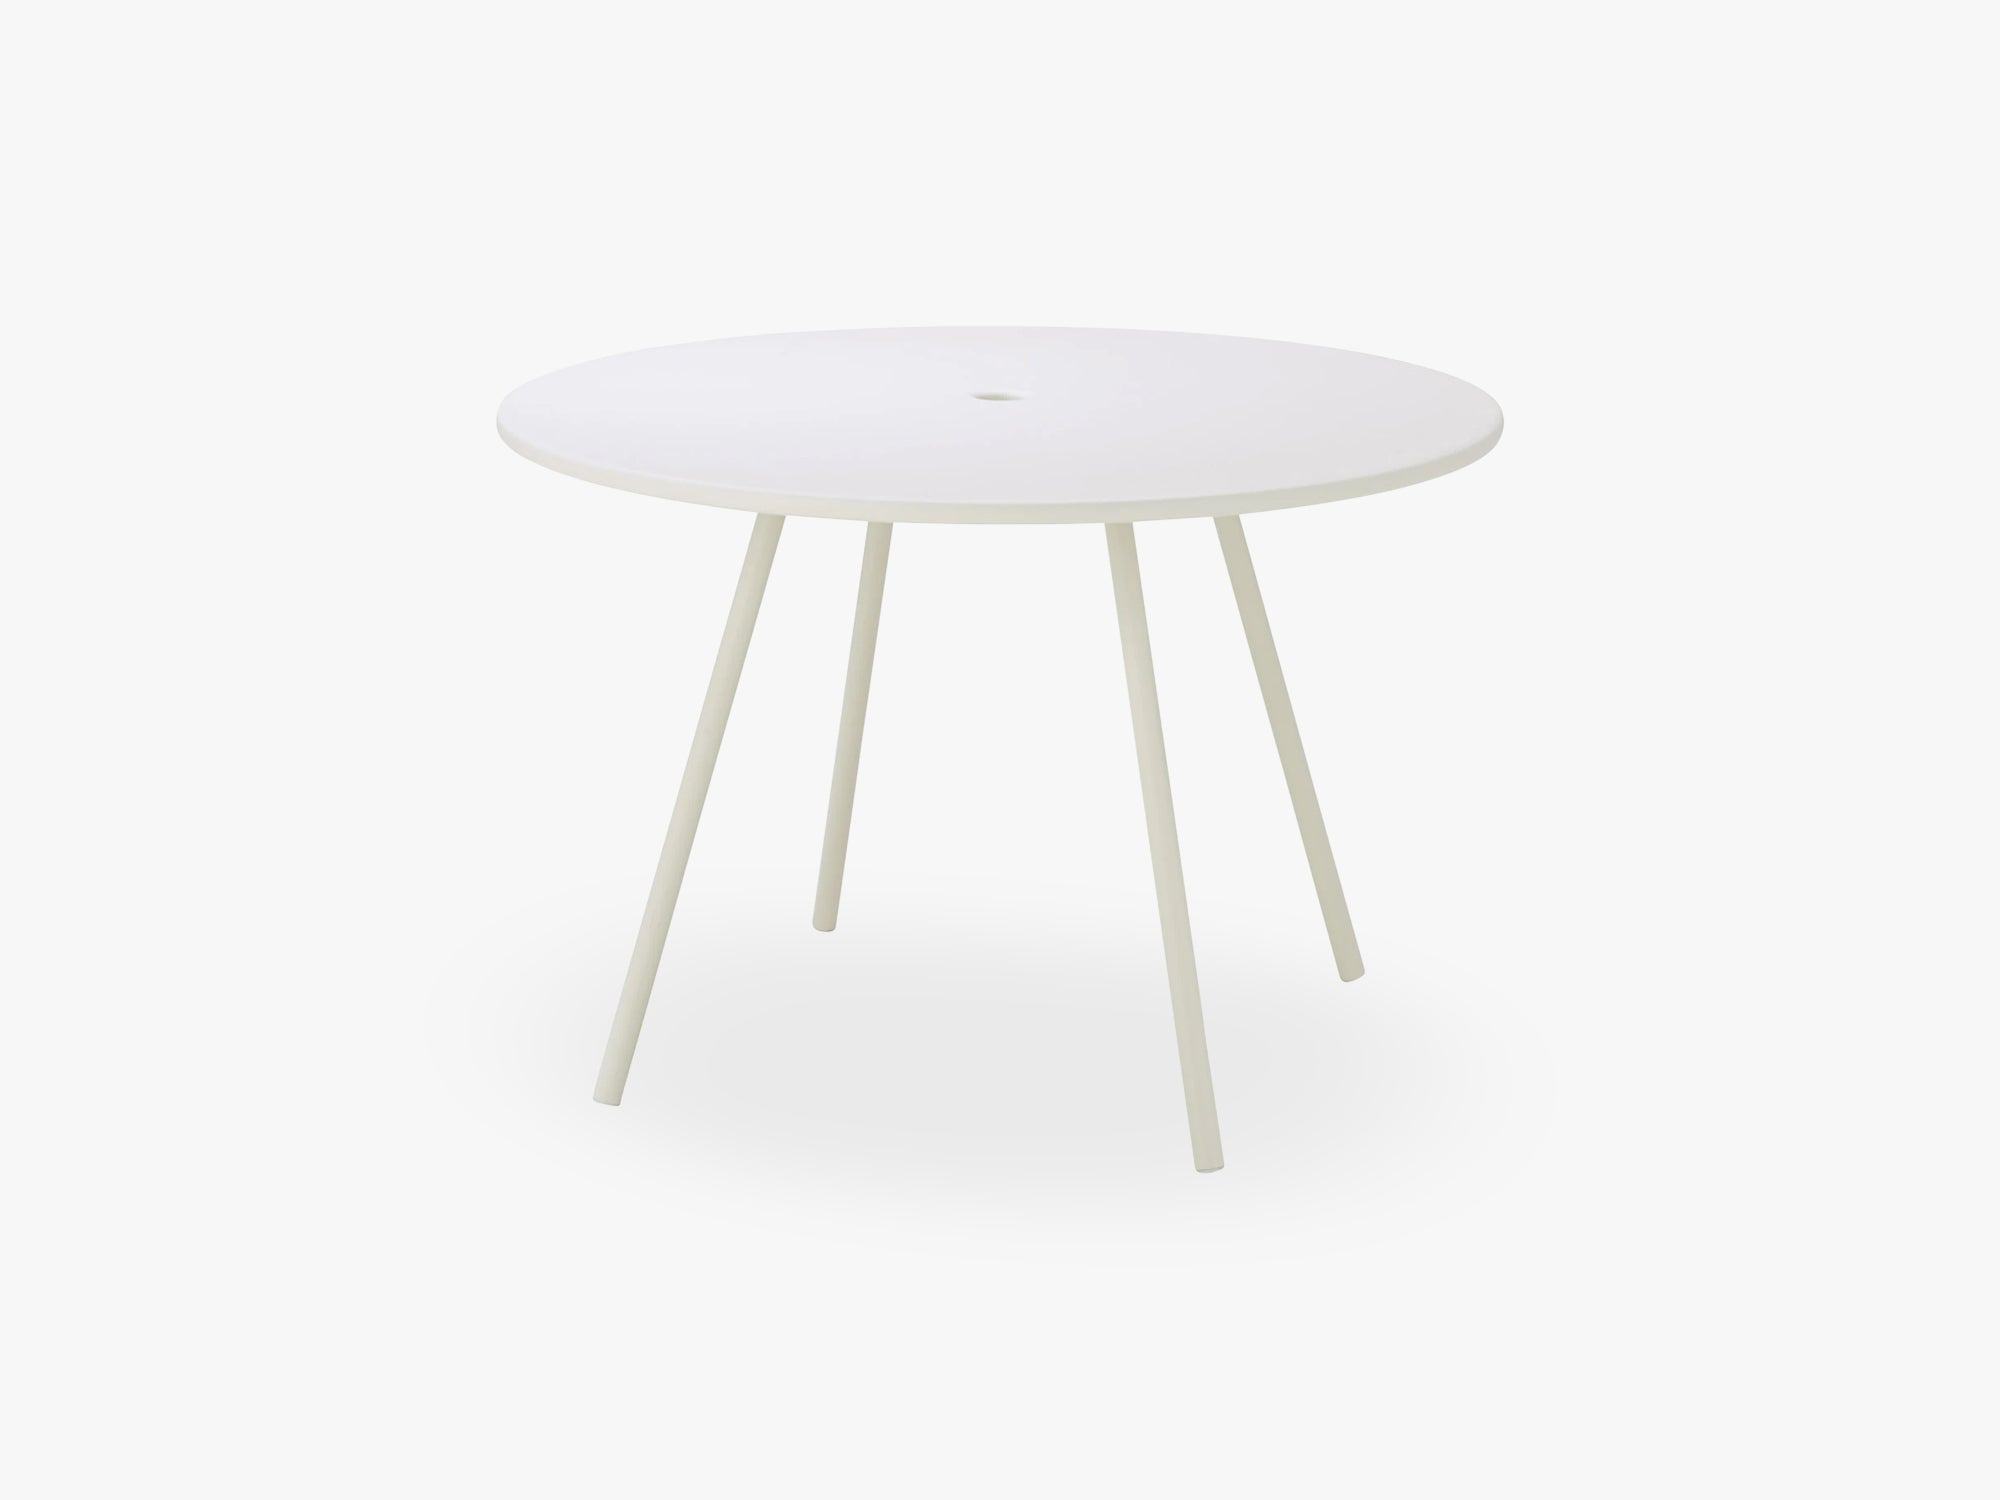 Area Dining Table Dia 110 Cm, White fra Cane-Line